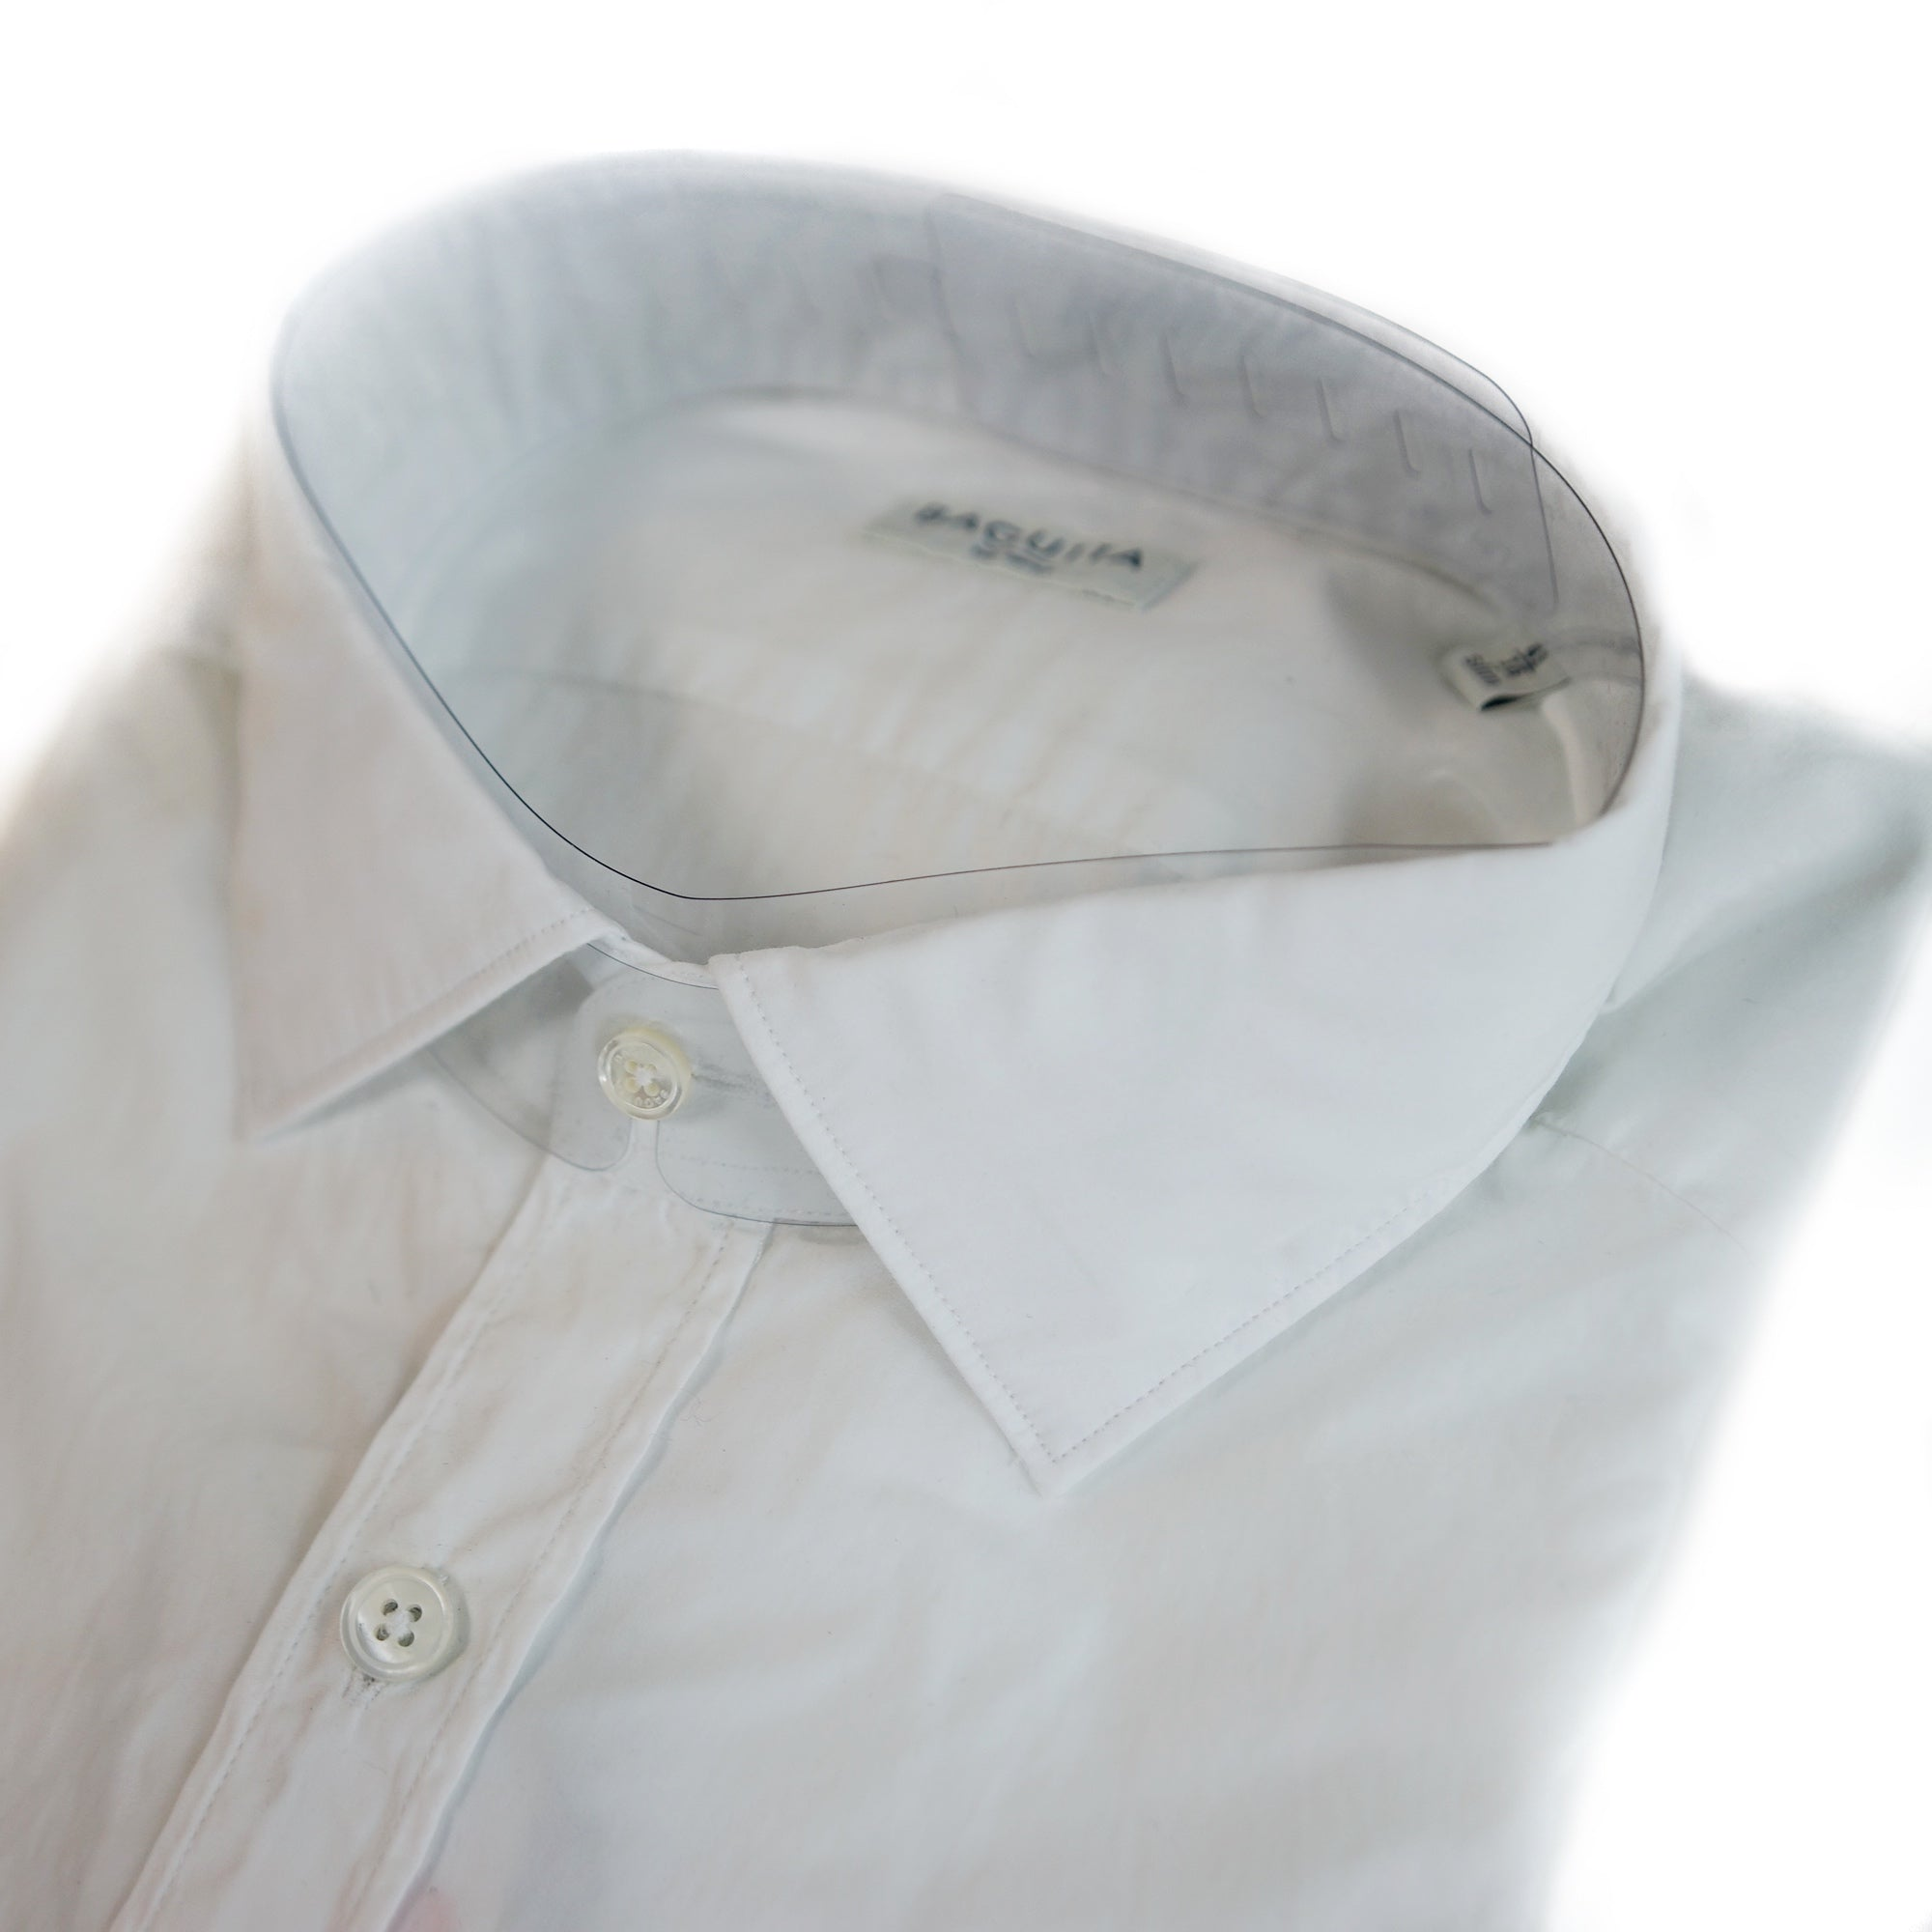 Bagutta Berlino White Broad Cloth Dress Shirt